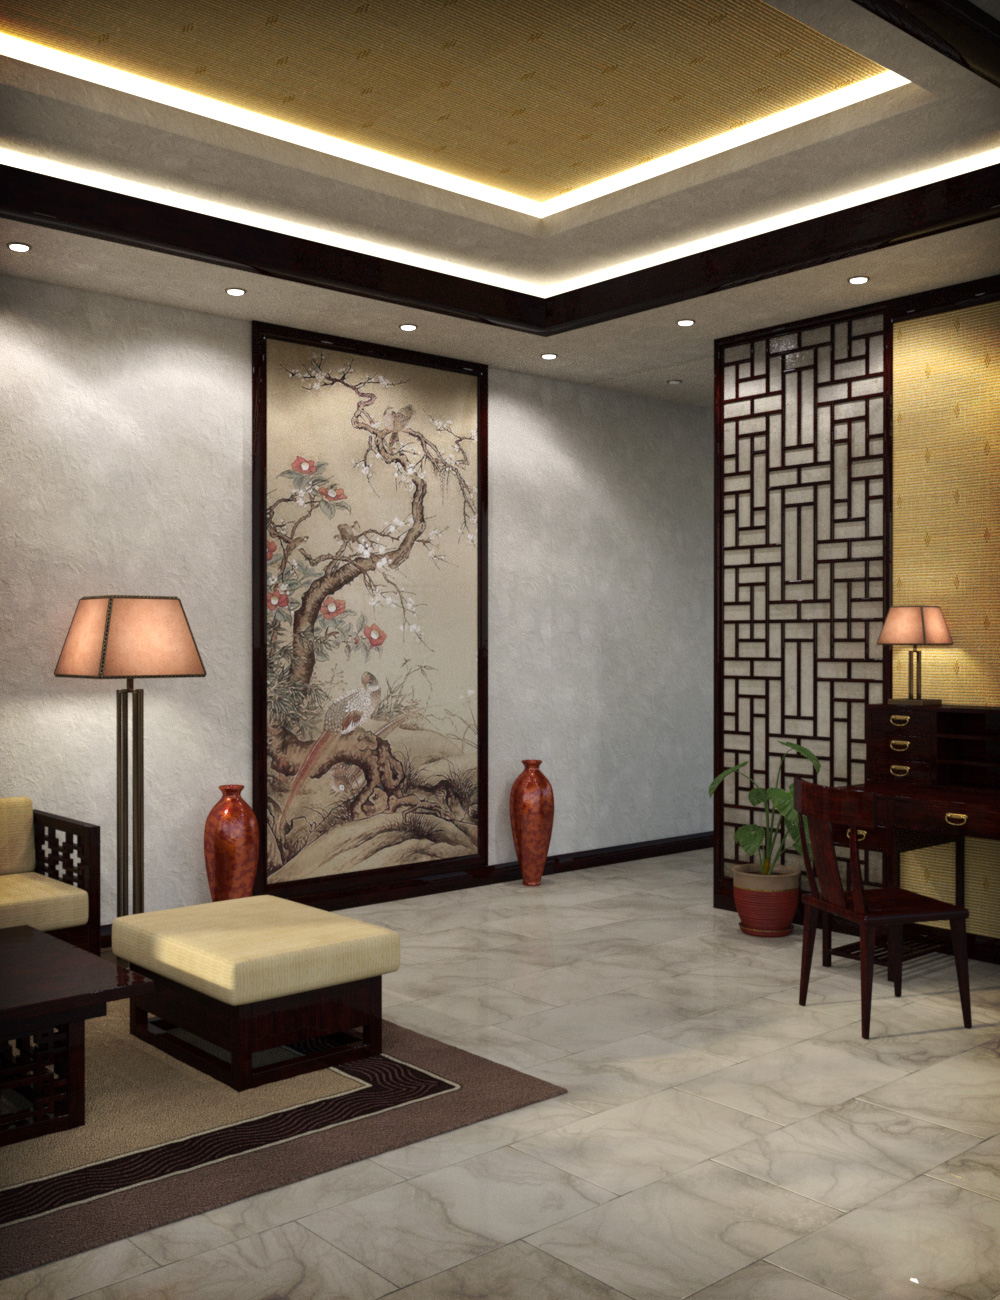 Modern Chinese Living Room by: esha, 3D Models by Daz 3D